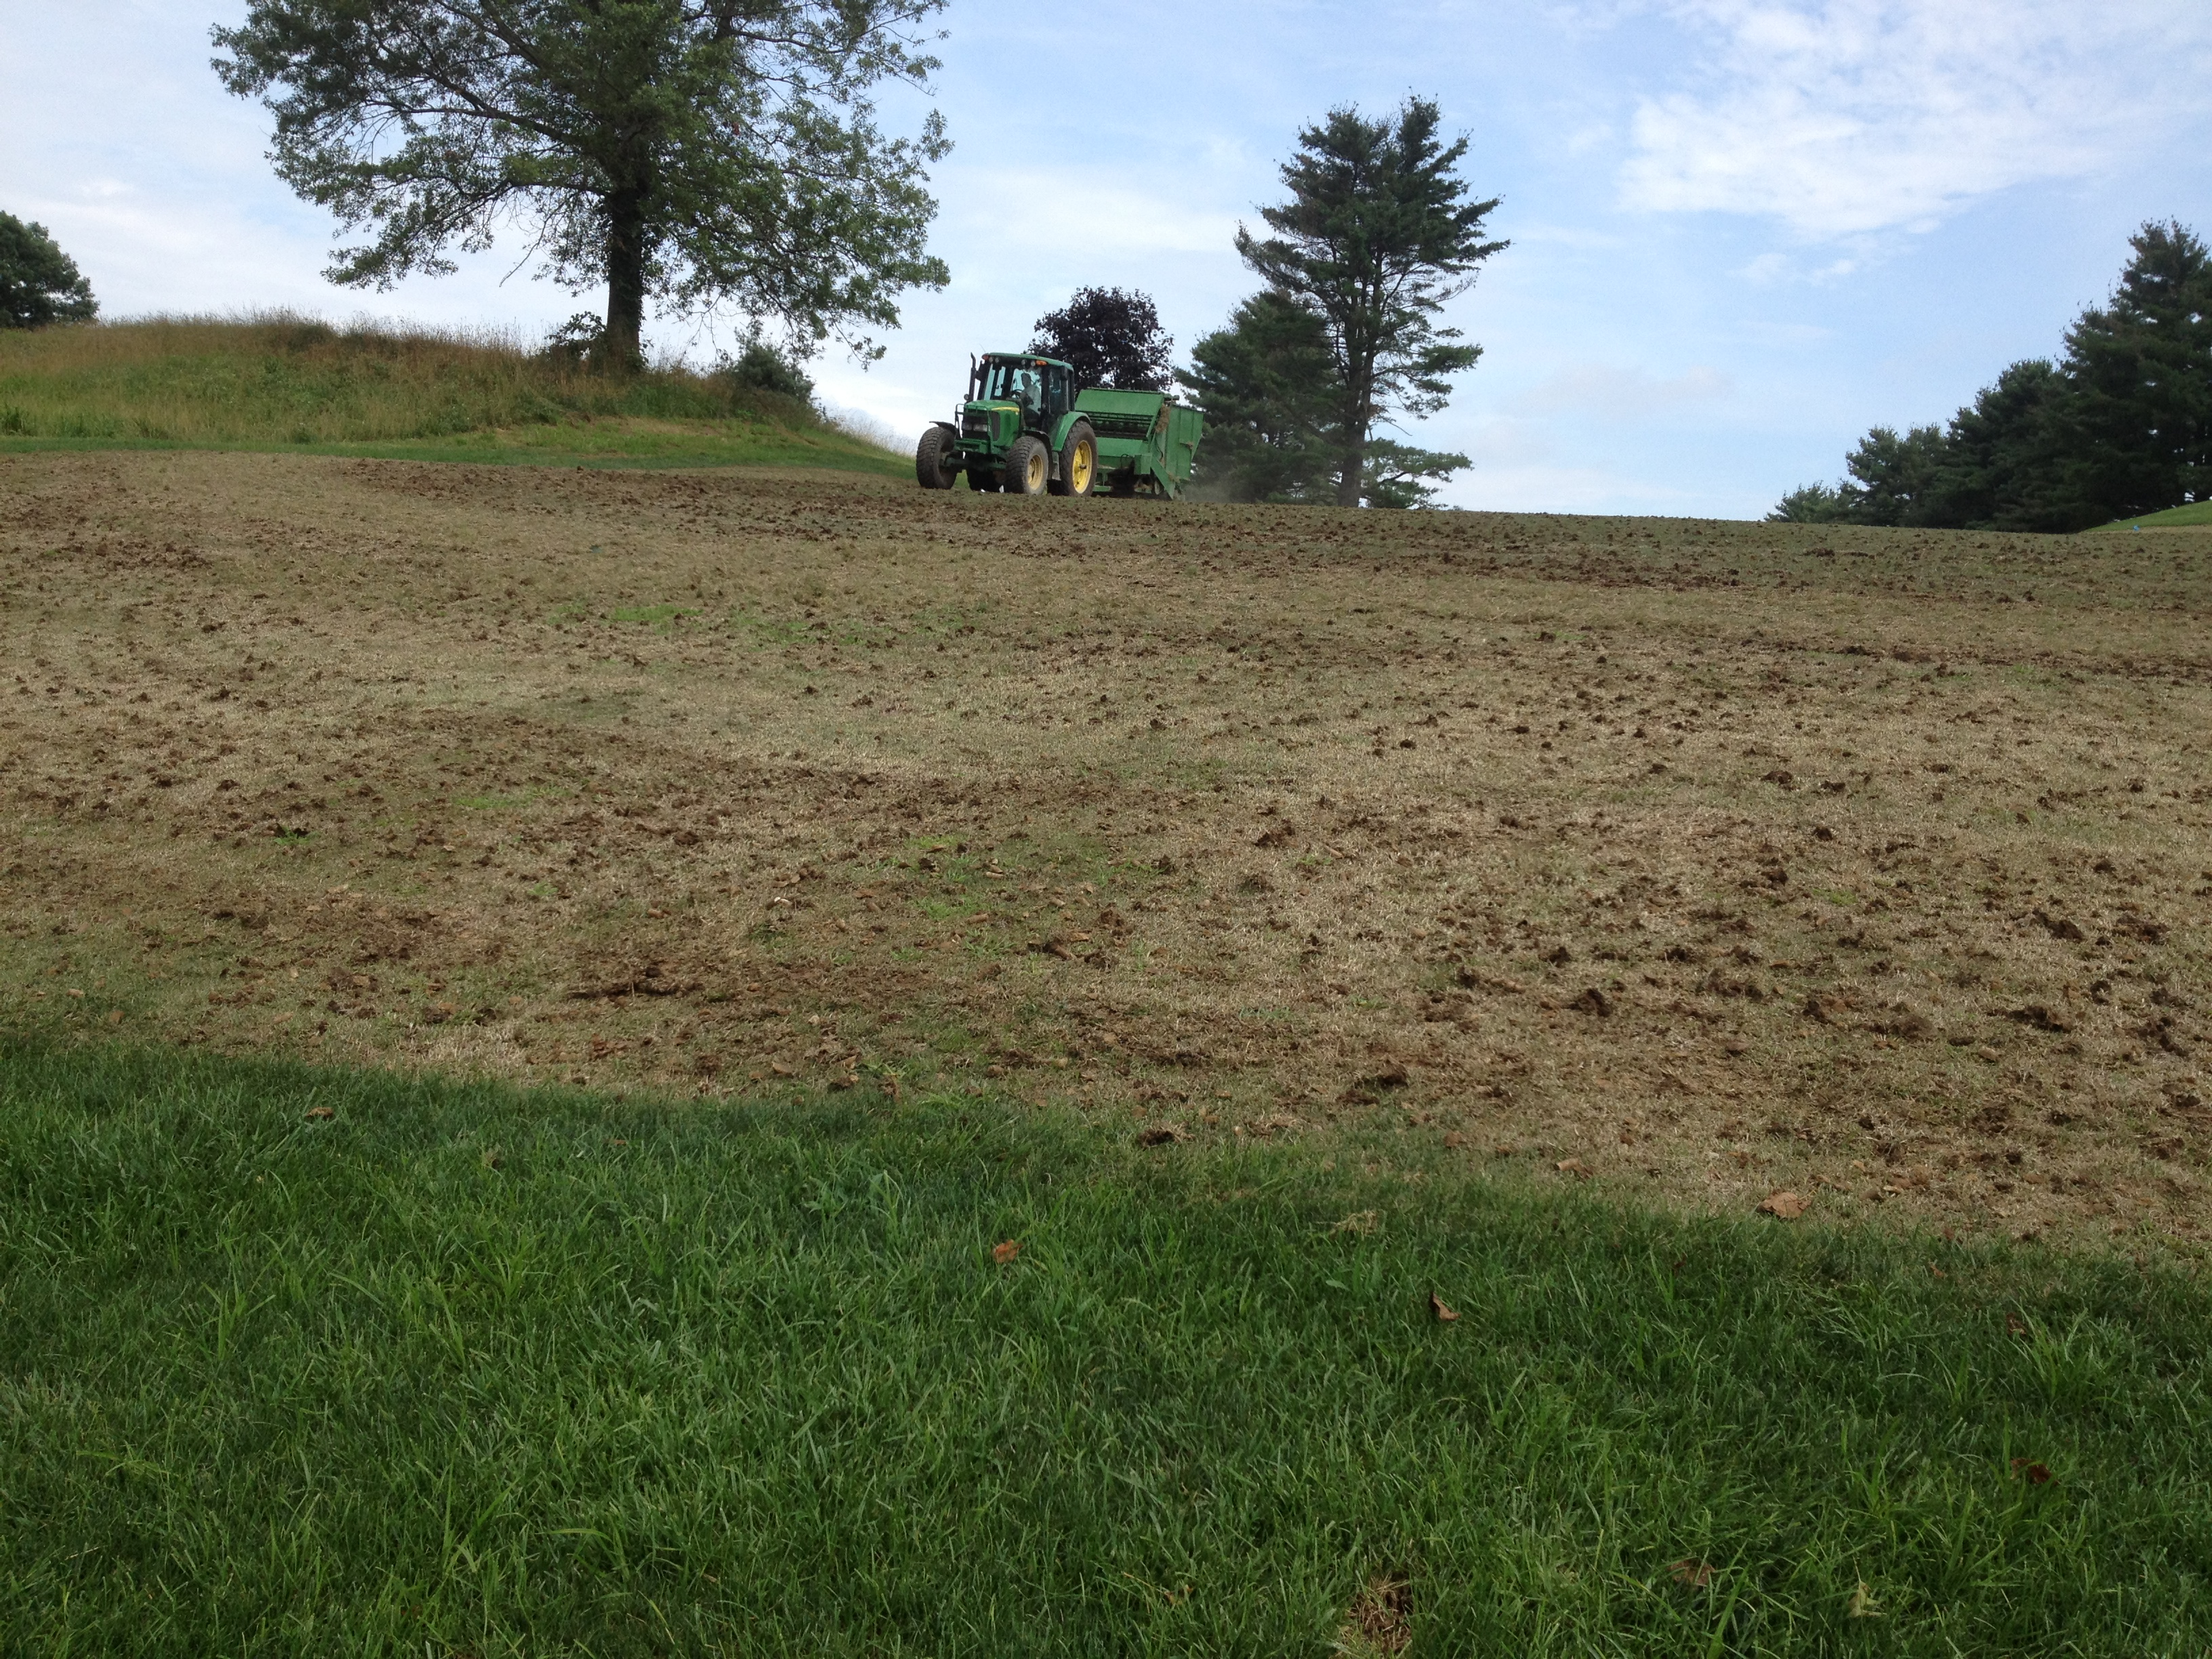 Planting sprigs into a fairway